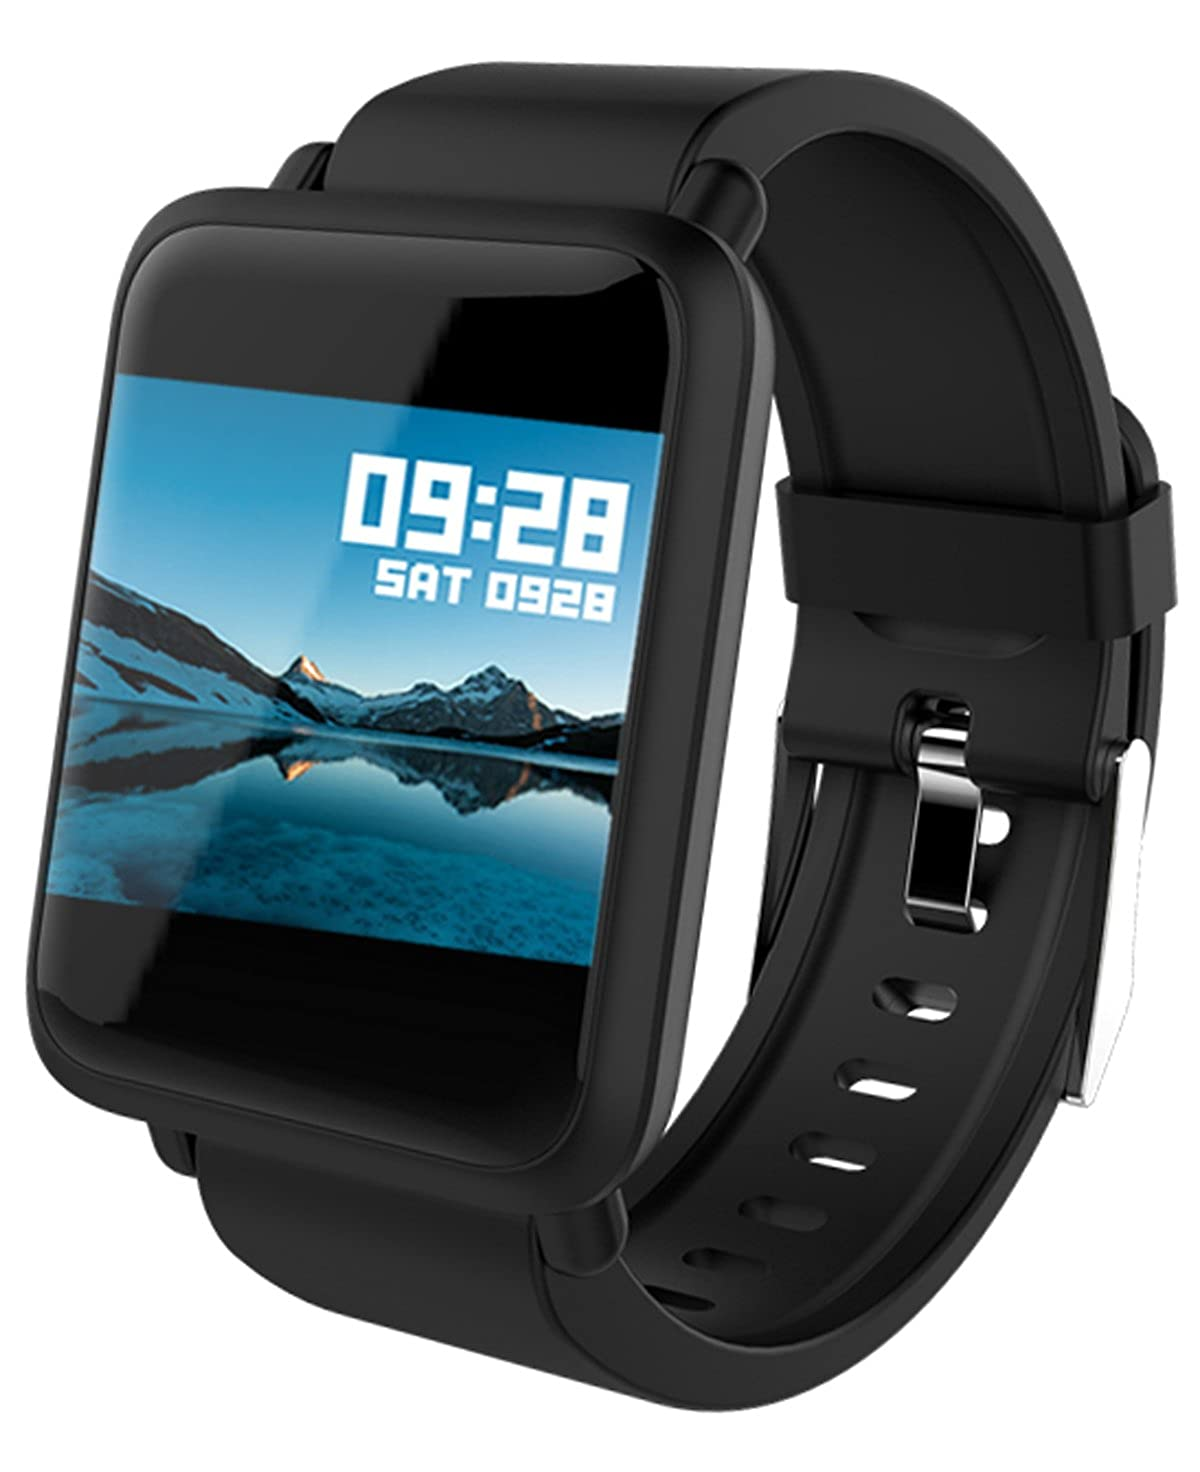 398dfe4990a64 Amazon.com  Fitness Tracker Smart Watch Bluetooth for Android iOS Heart  Rate Blood Pressure Monitor Swimming Sports Activity Tracker Watch  Watches